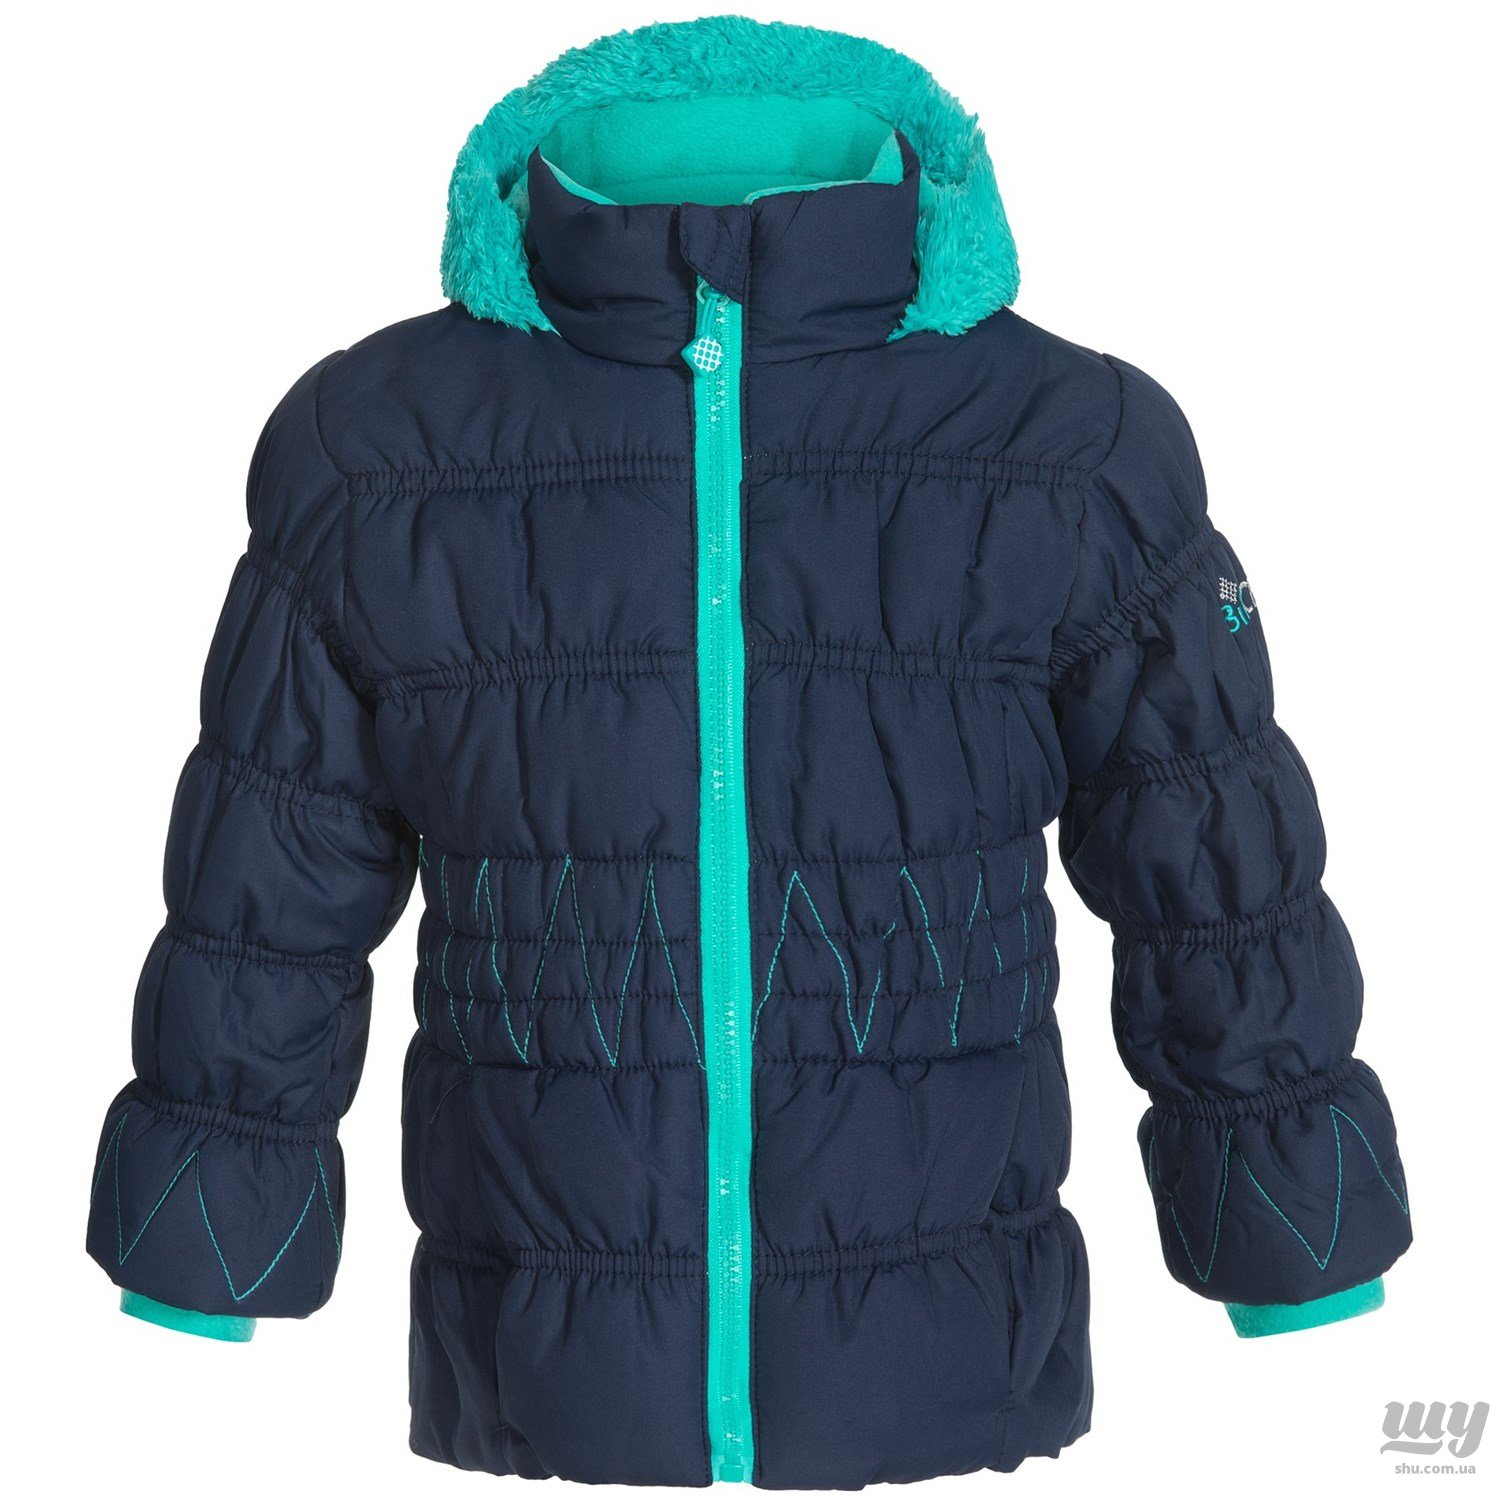 big-chill-contrast-stitch-puffer-jacket-insulated-for-little-girls-in-black-p-9553p_04-1500.3.jpg